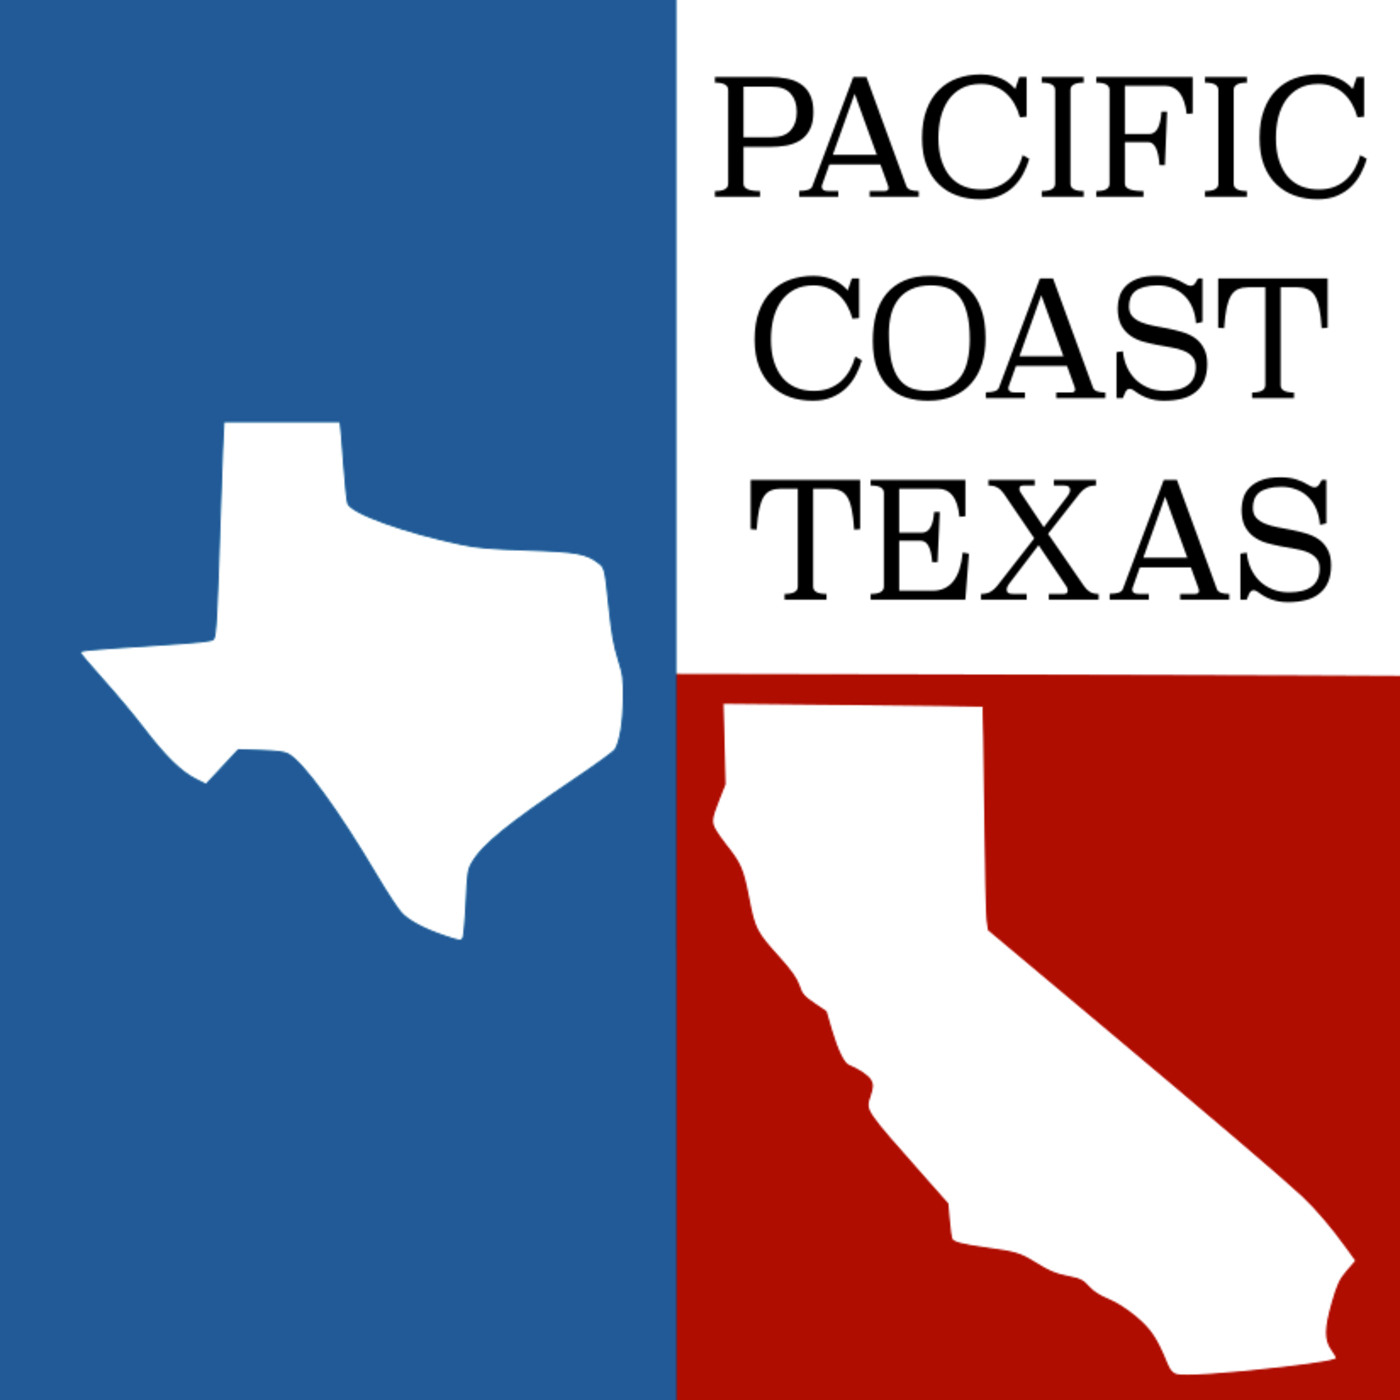 Pacific Coast Texas